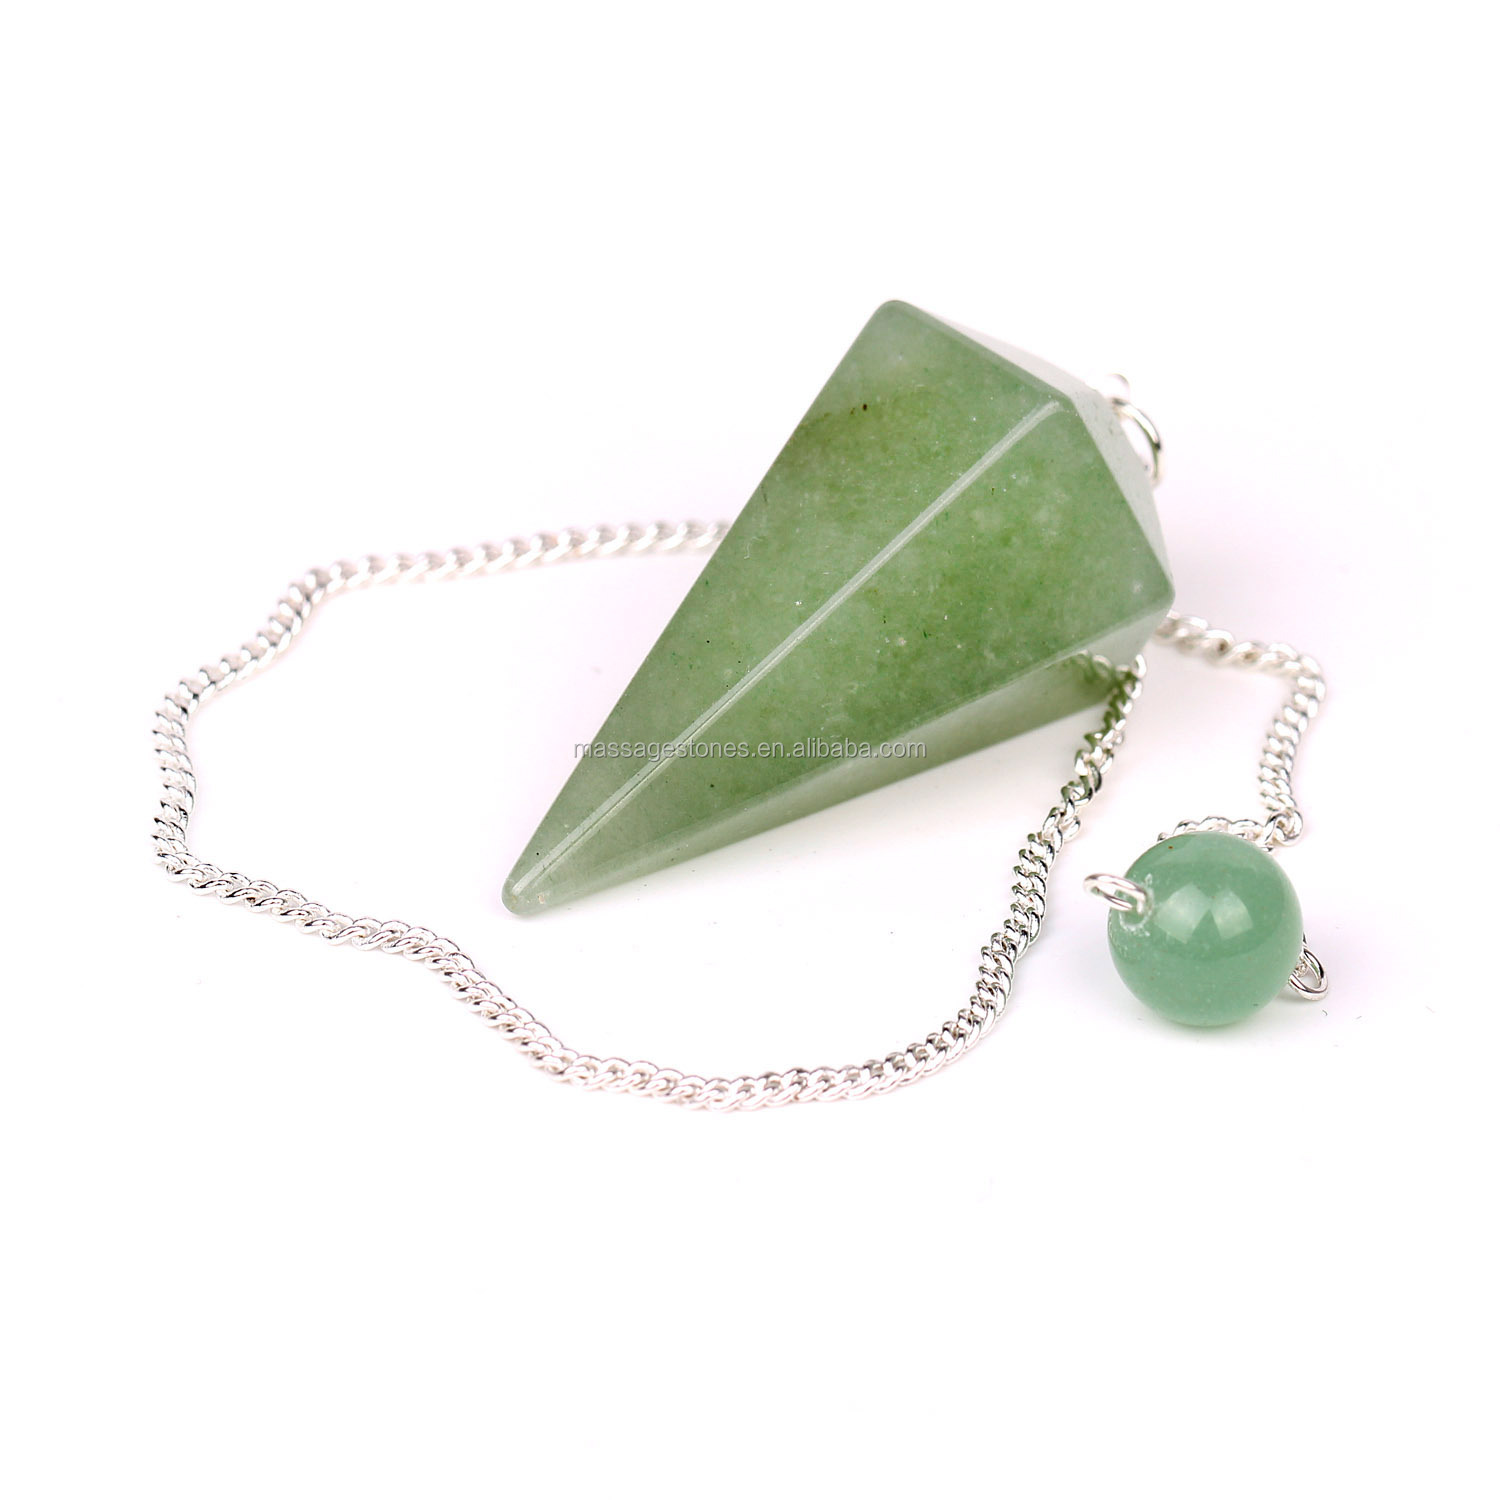 Top Unique New Jade Crystal Keychain Gift for Antique Lover / Promotional Energy Keychain Pendulum in Bulk Wholesale